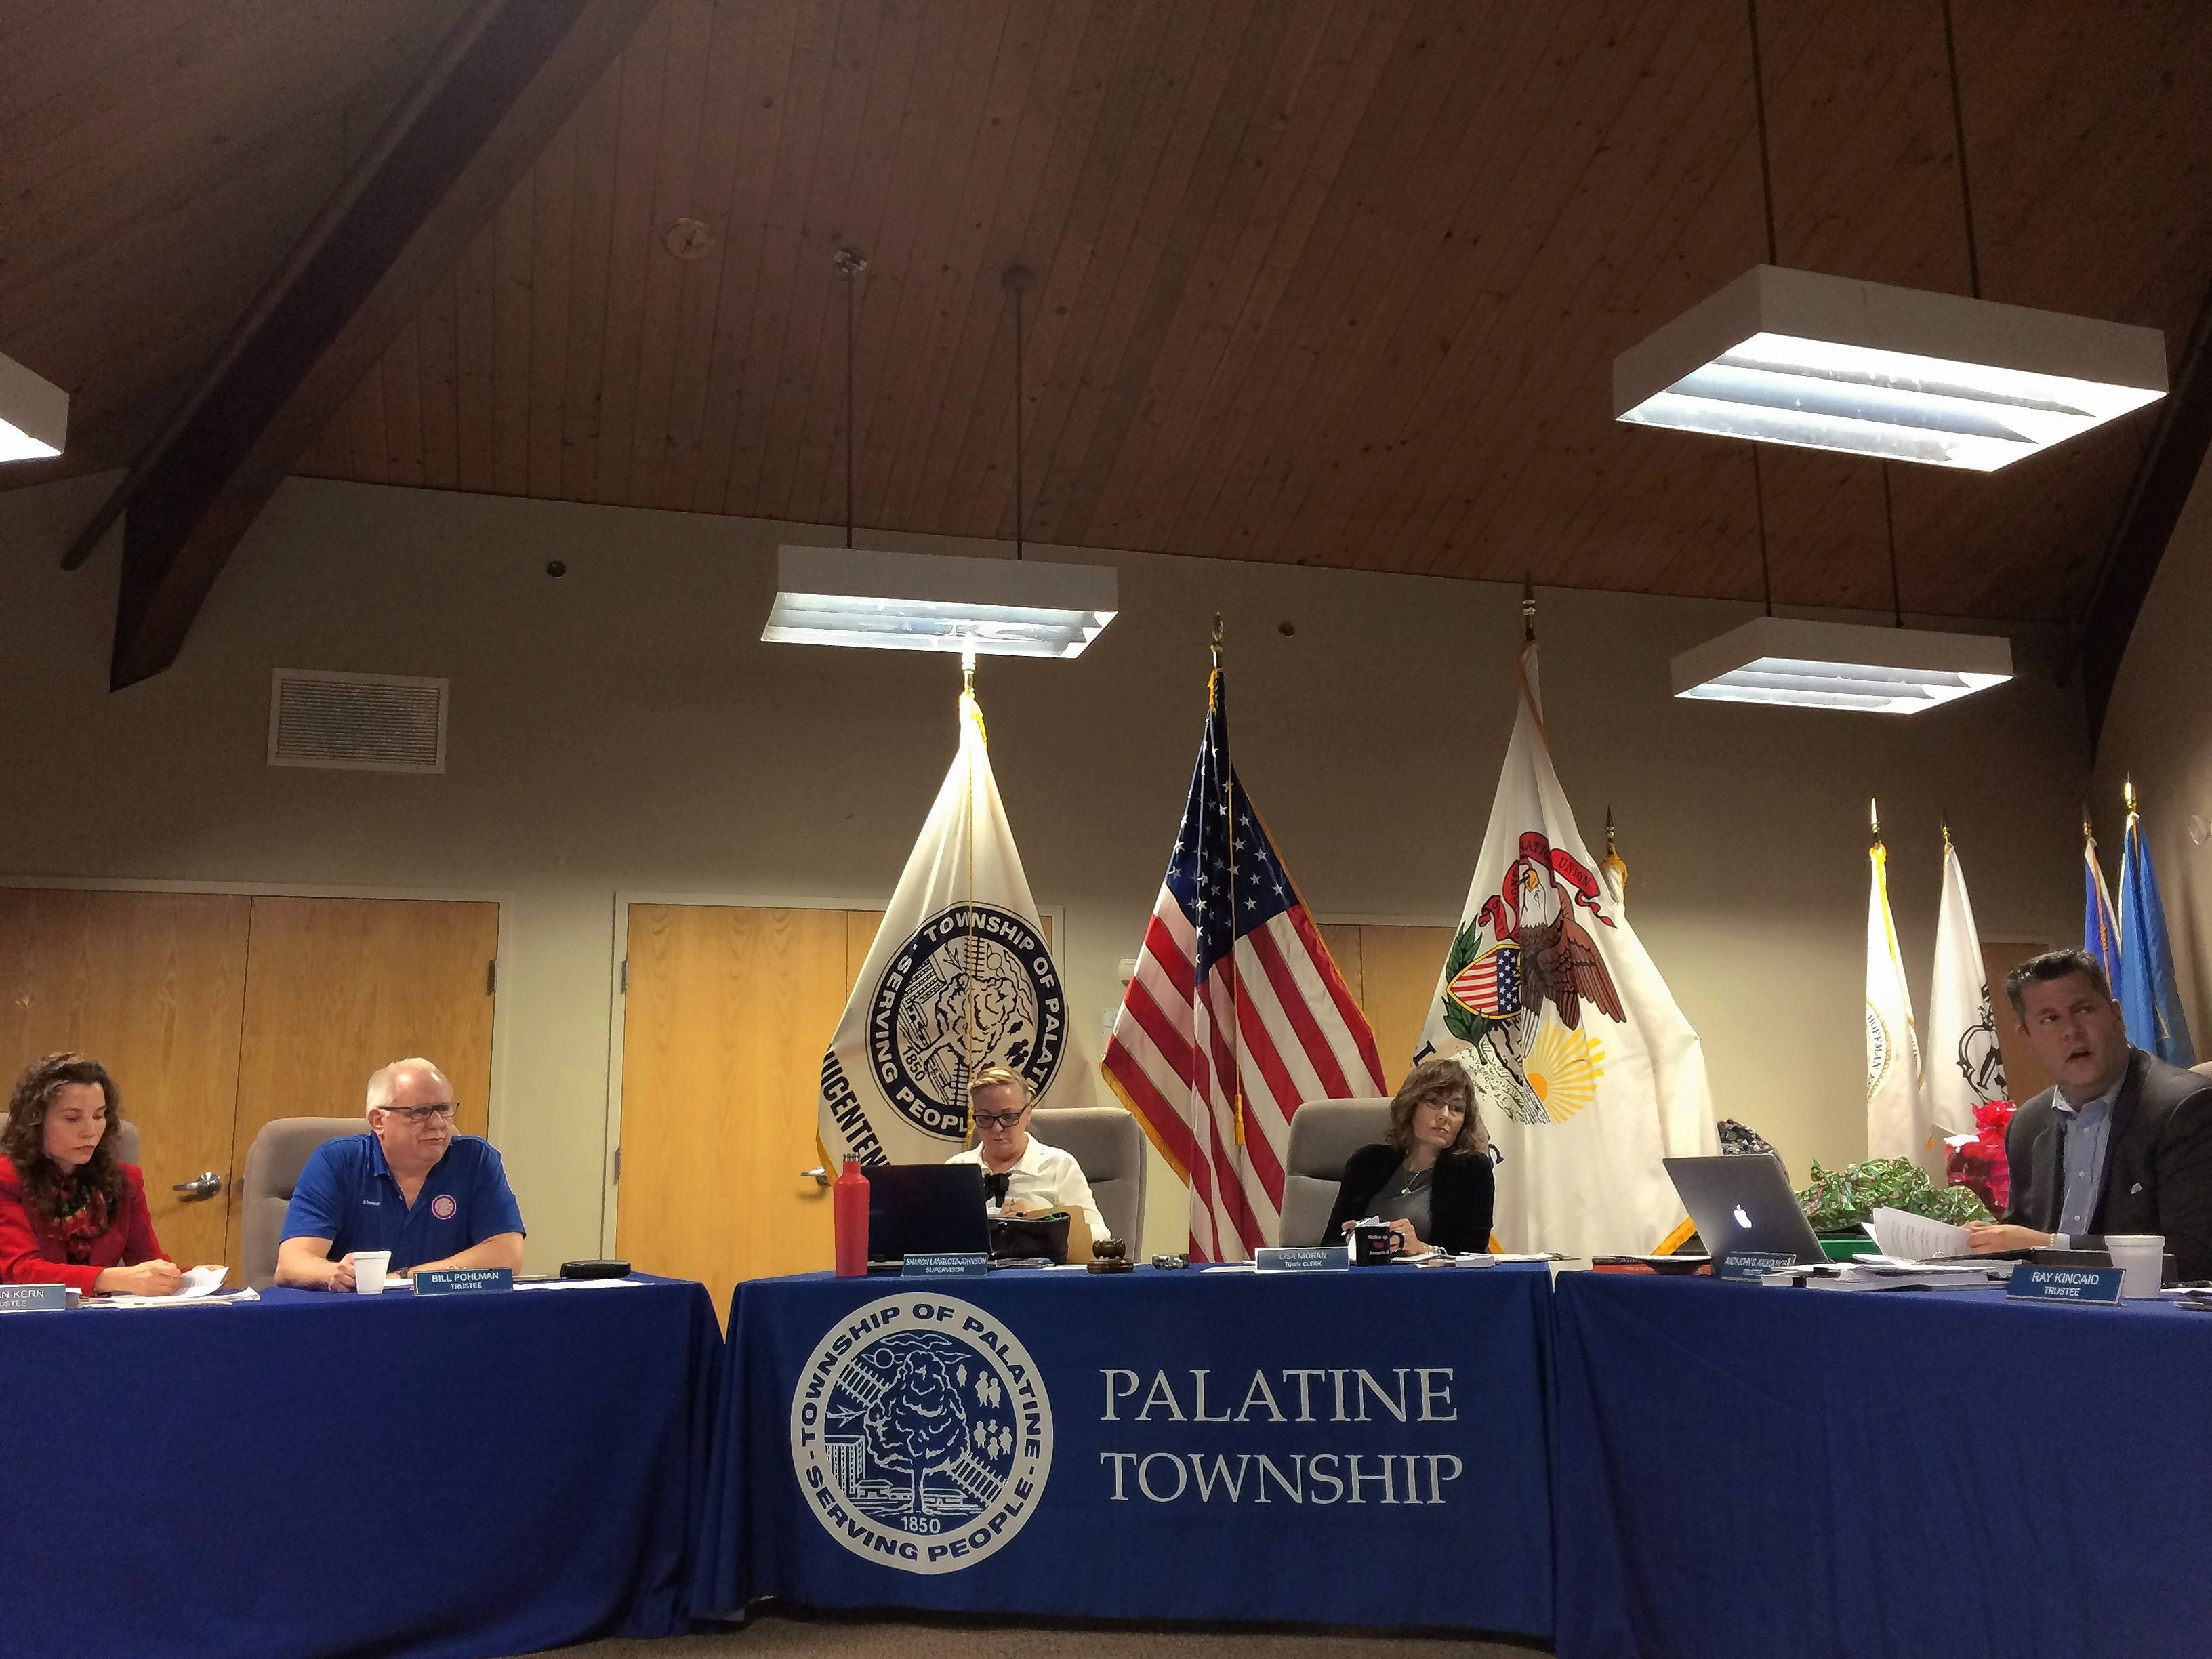 Palatine Township board members Monday night agreed further discussion is needed before voting on a policy that would allow the hiring of a parliamentarian to ensure meetings run smoothly.